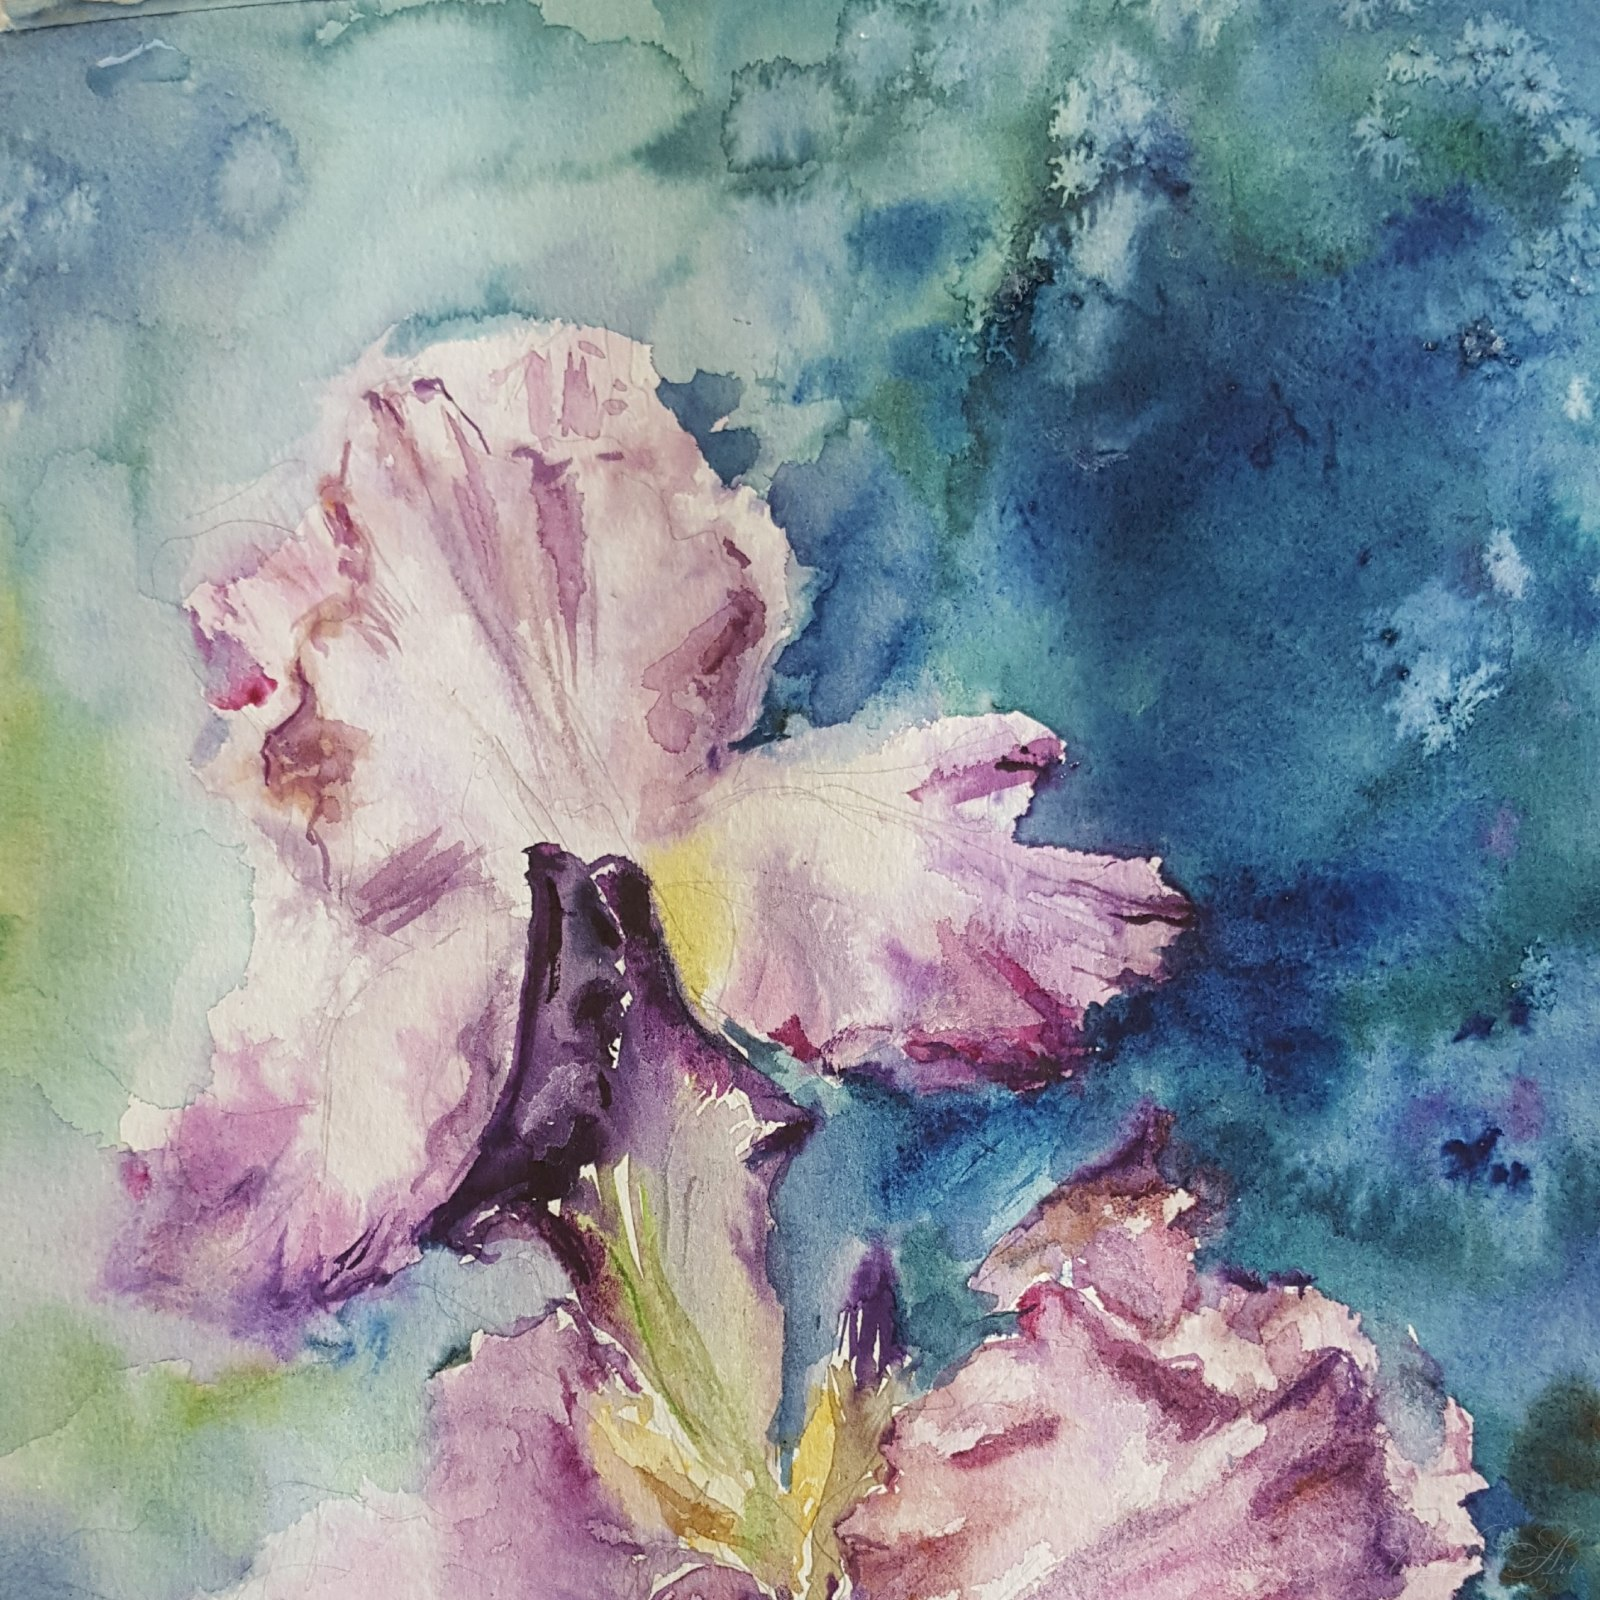 My watercolors